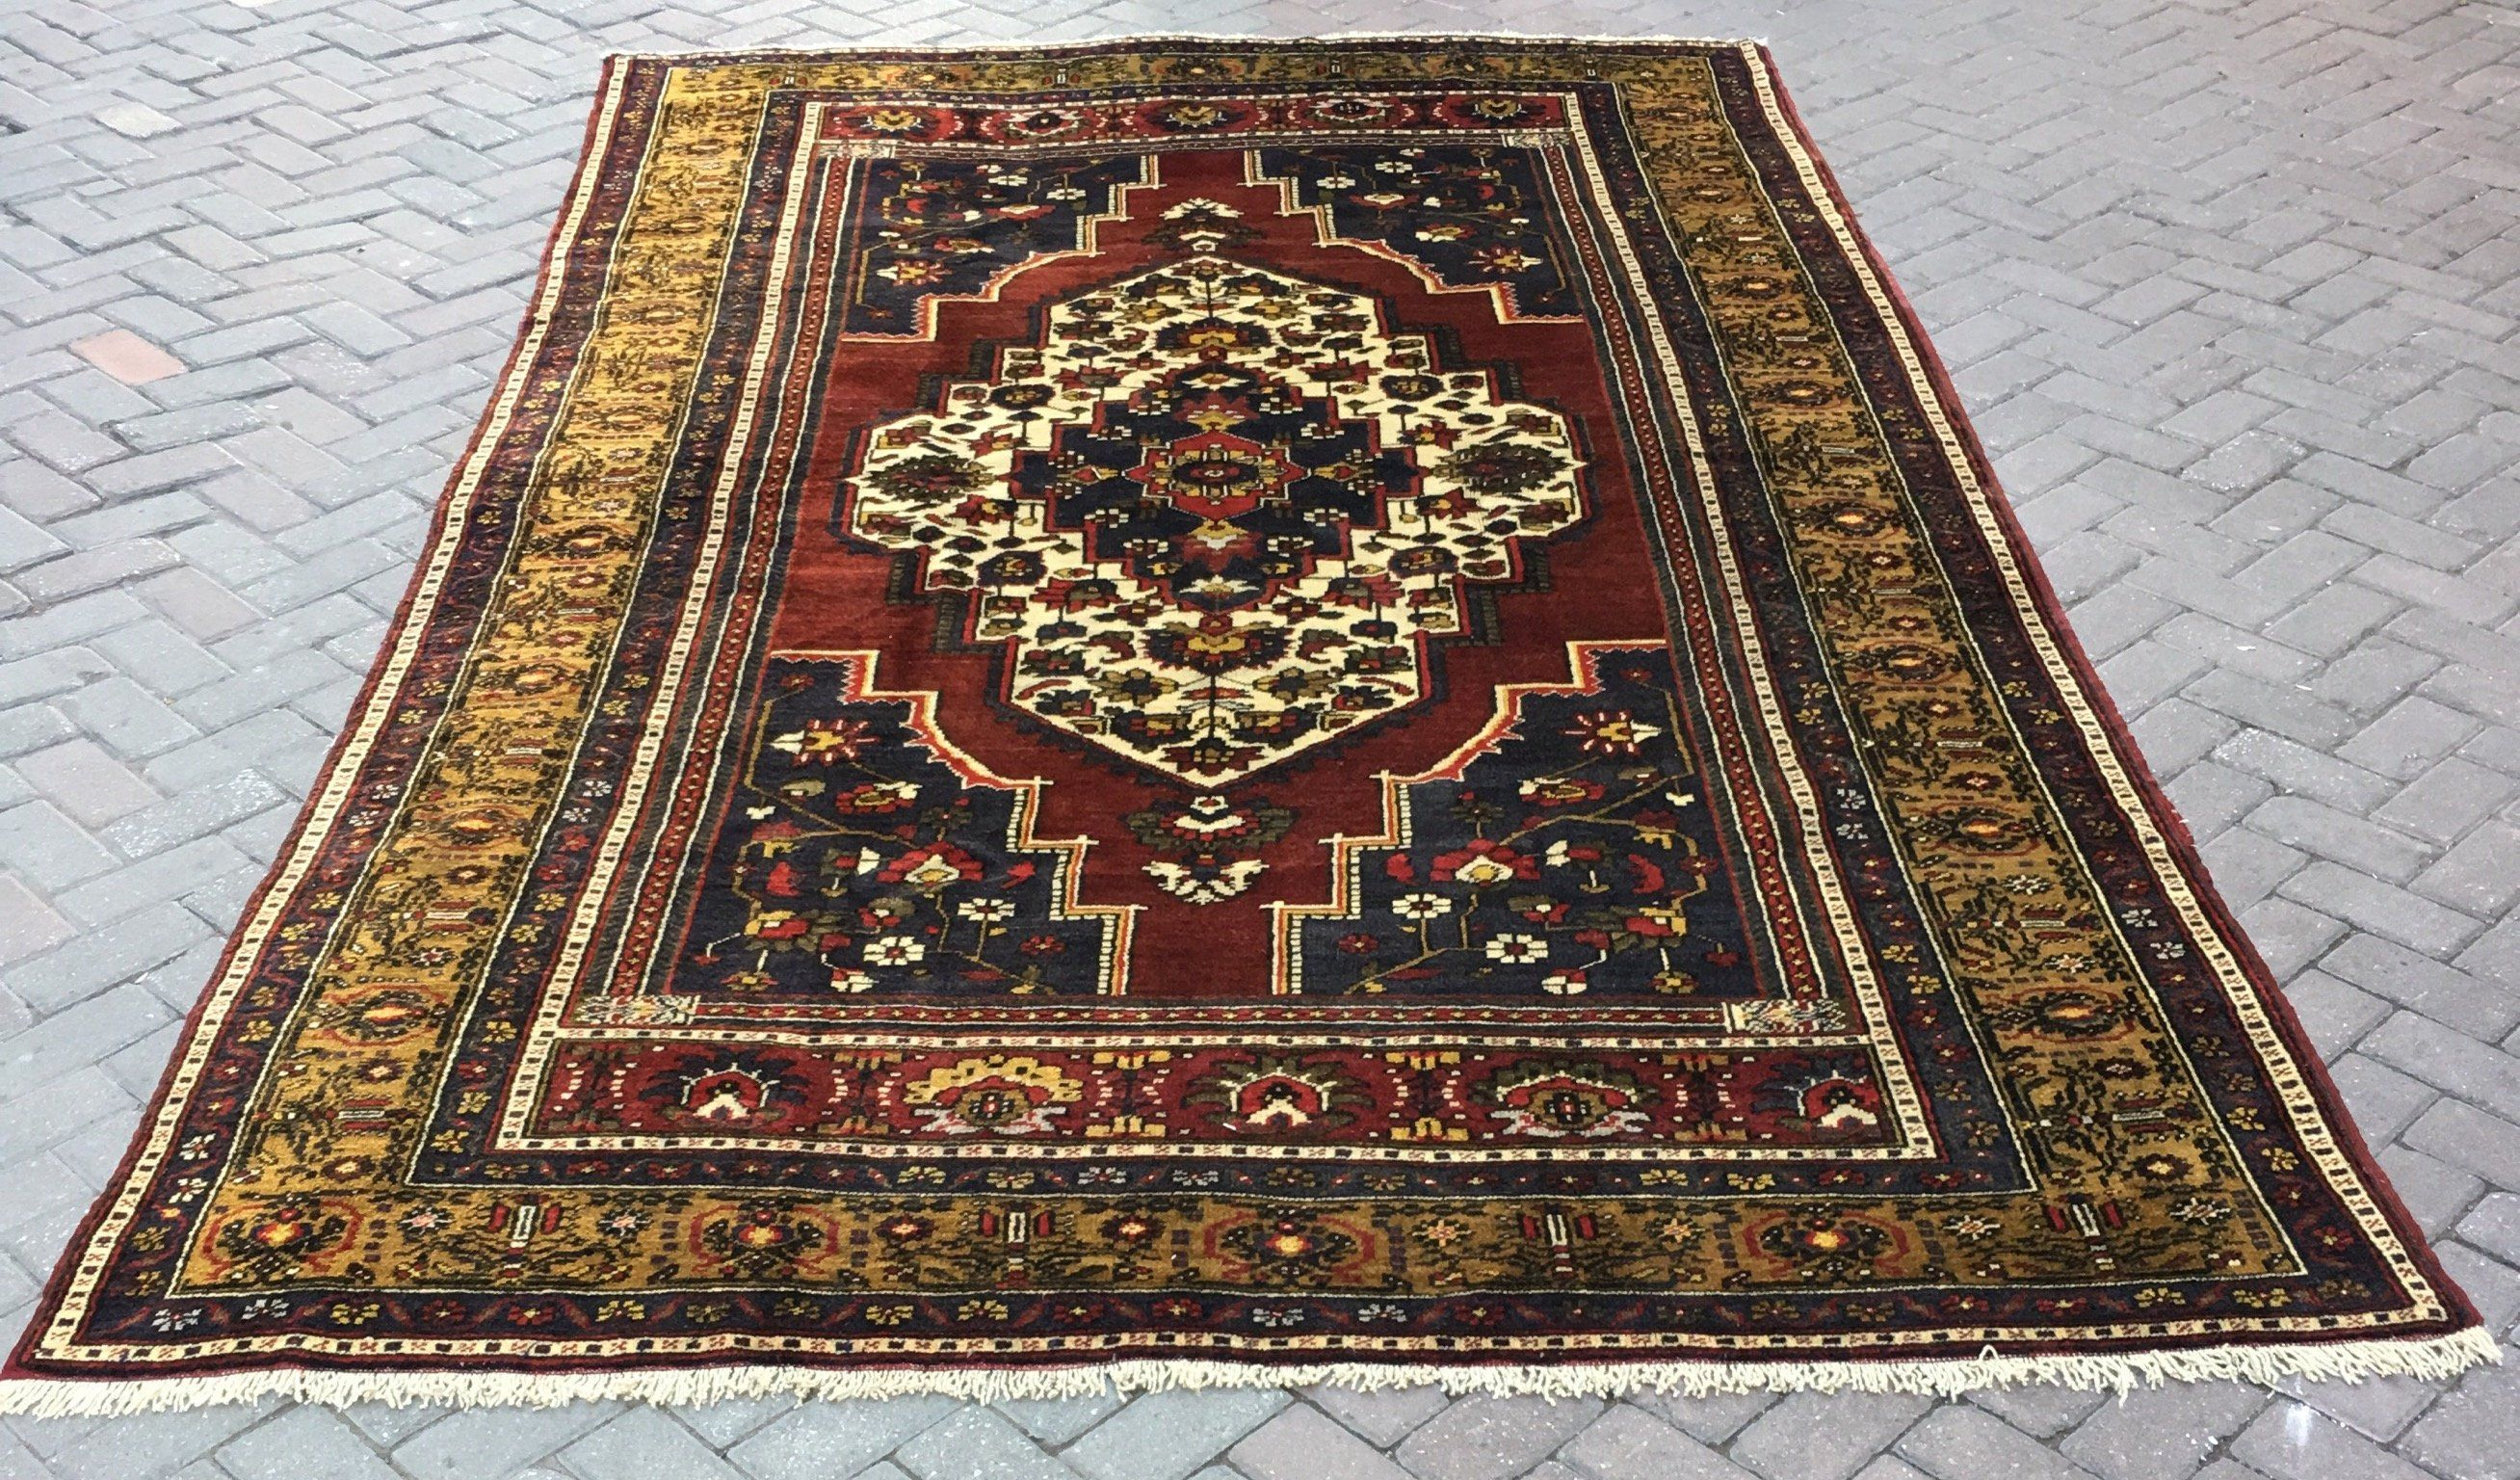 Pin On Beautiful Carpets And Rugs